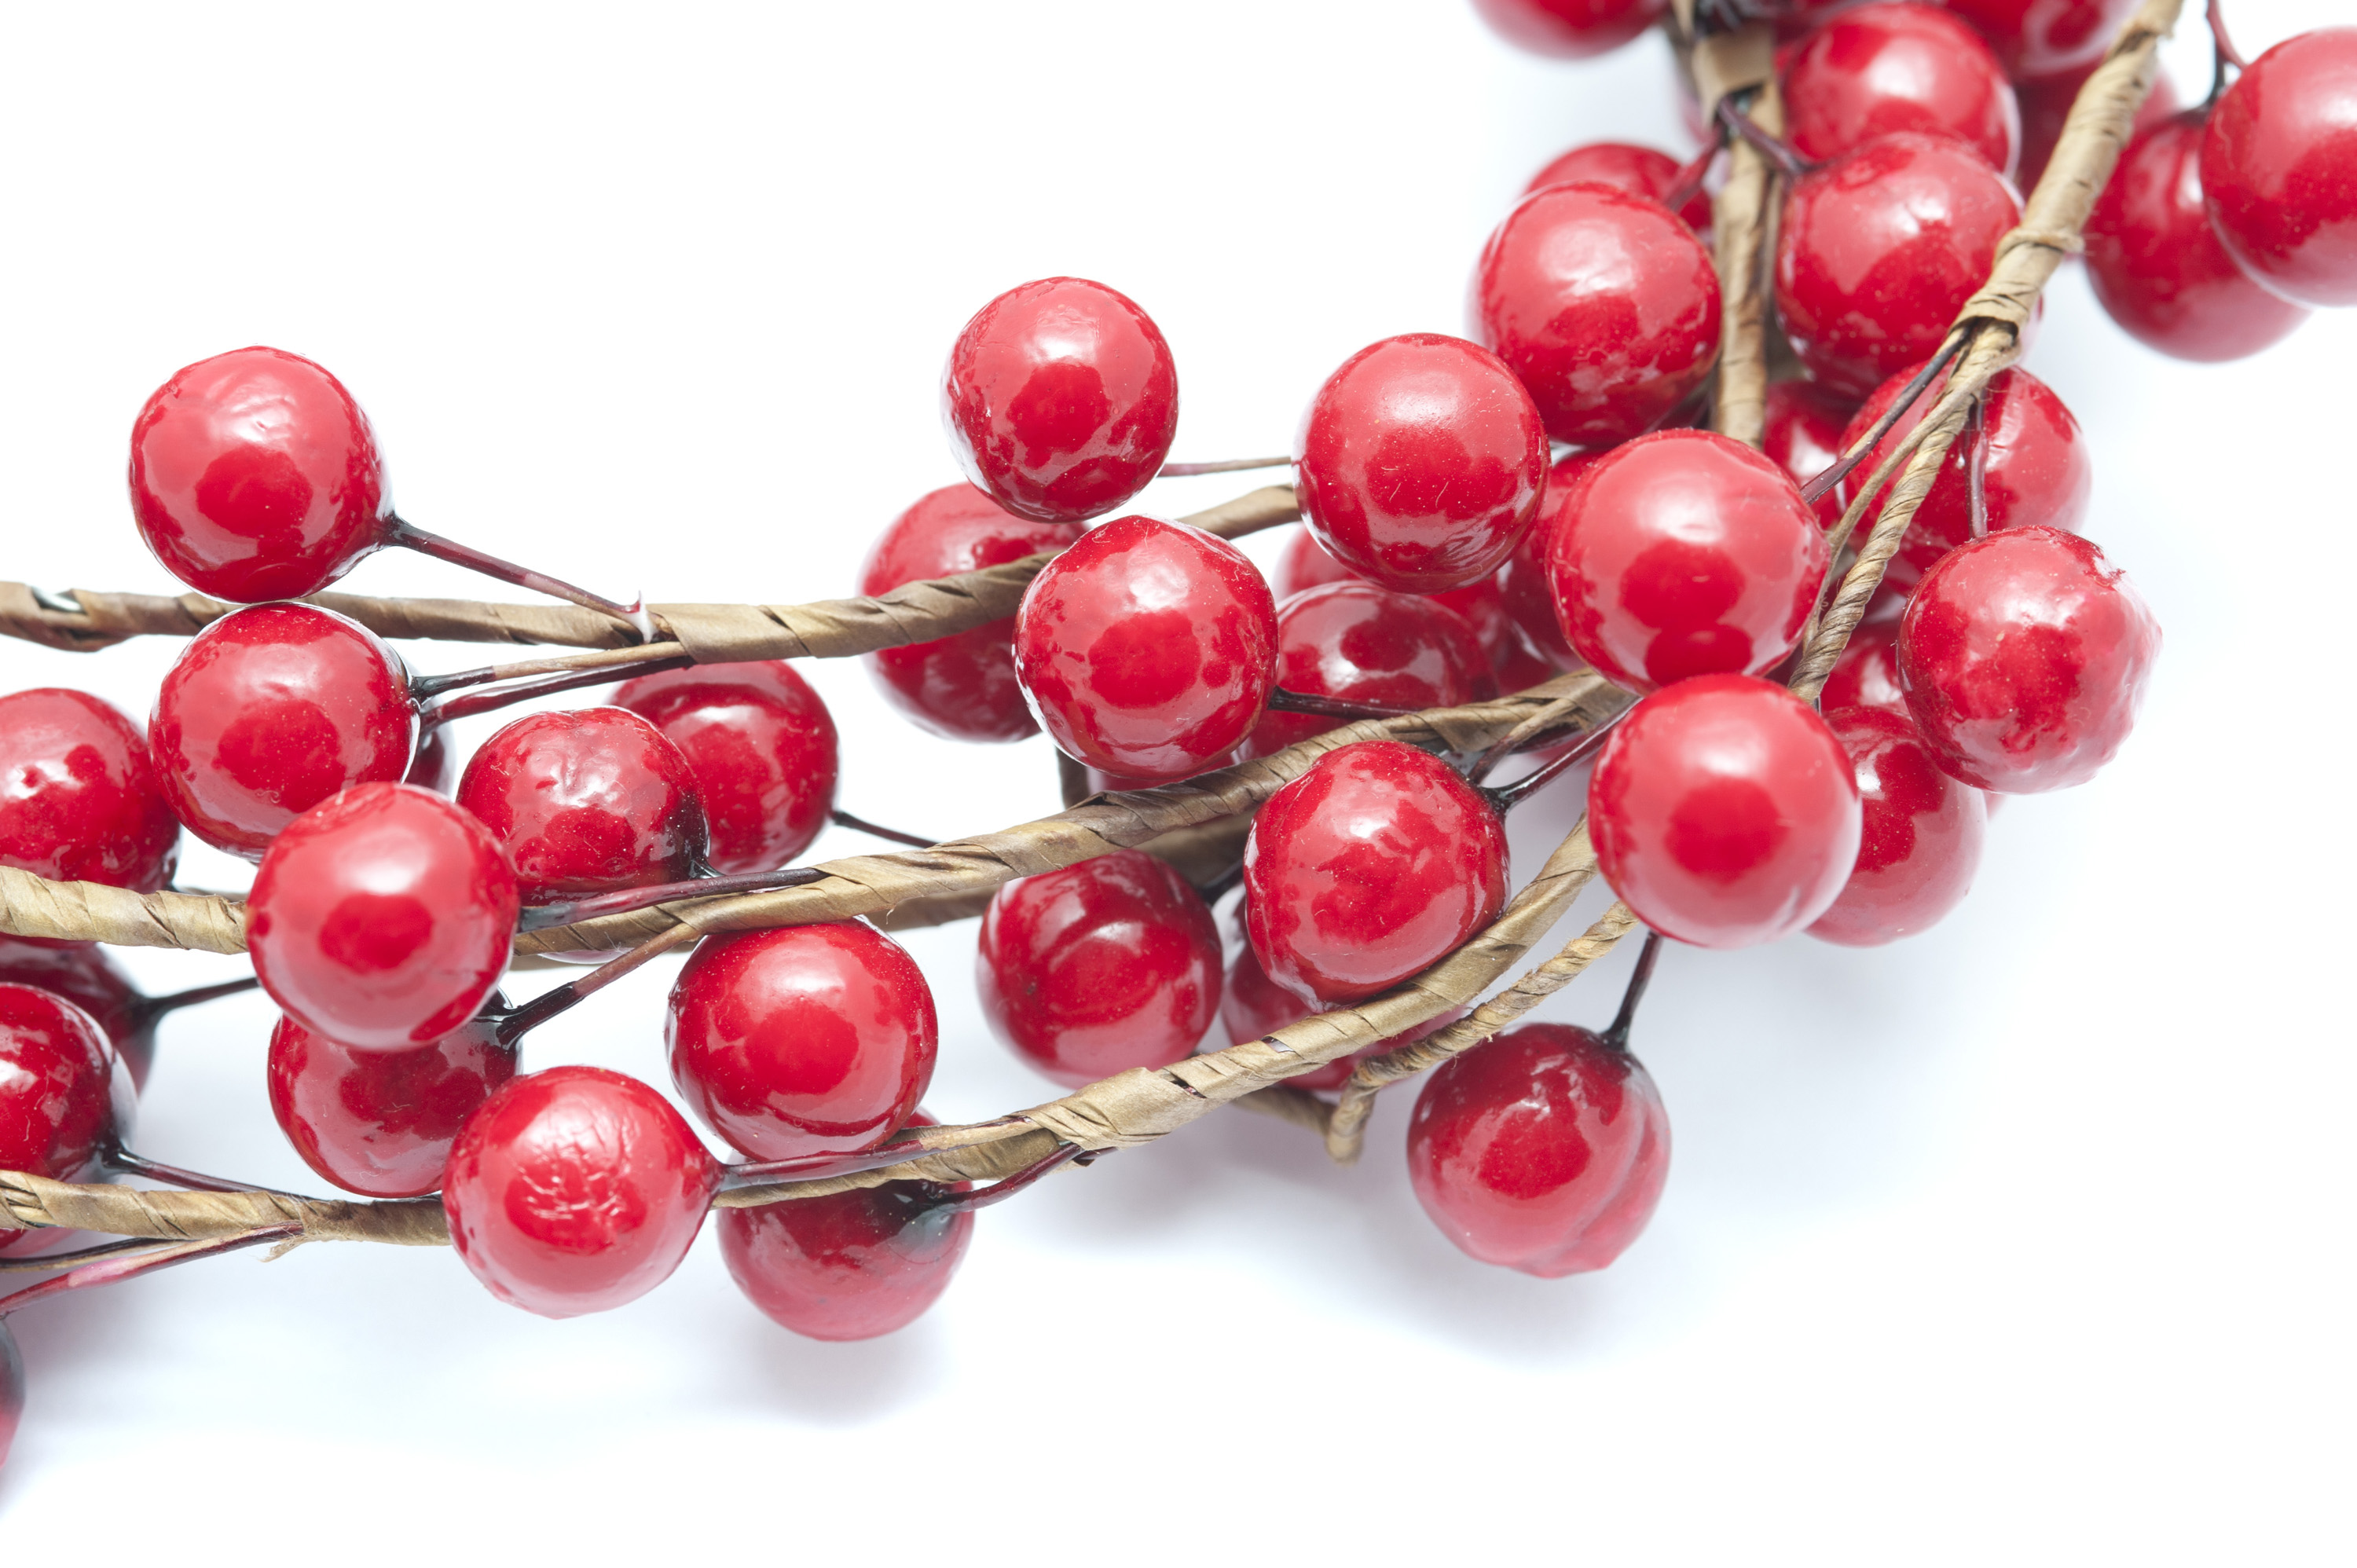 Crop close up decorative branch with red berries isolated on white background.